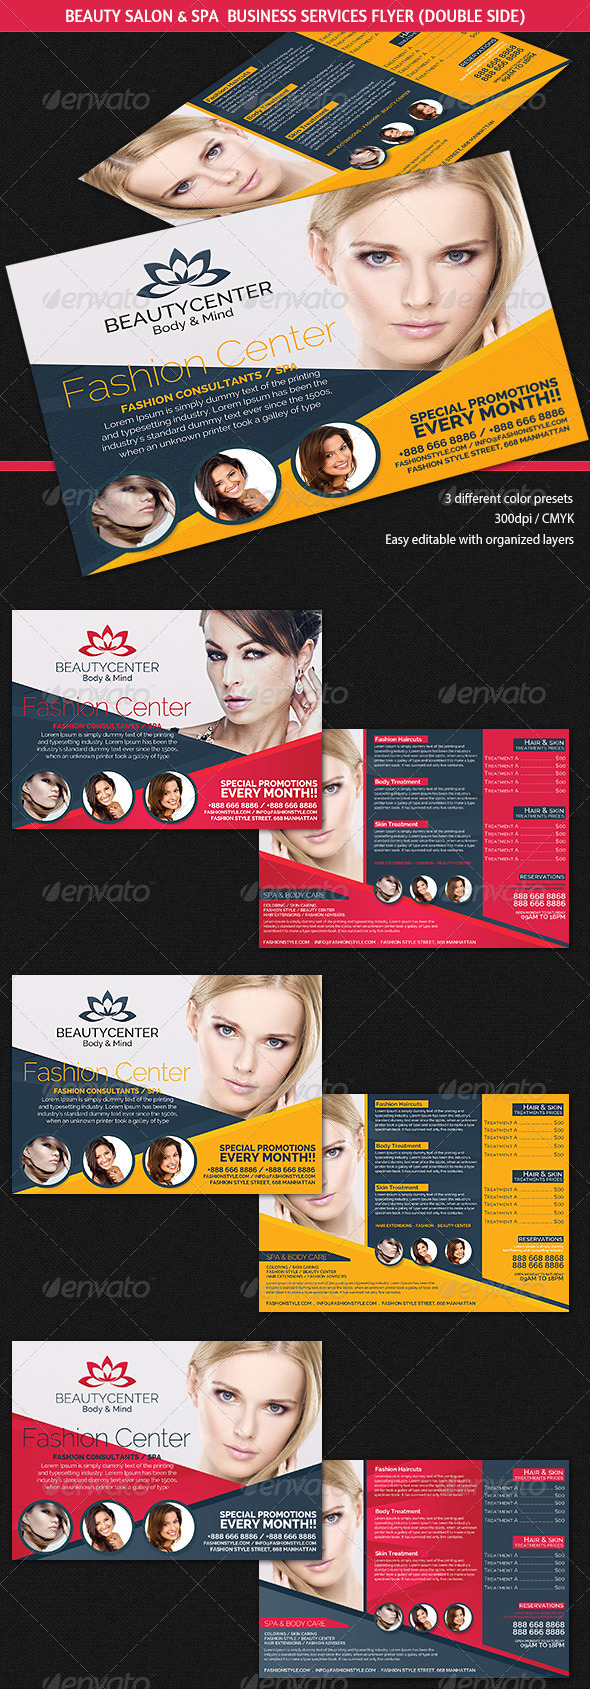 Beauty Center Spa Business Services Flyer Graphicriver